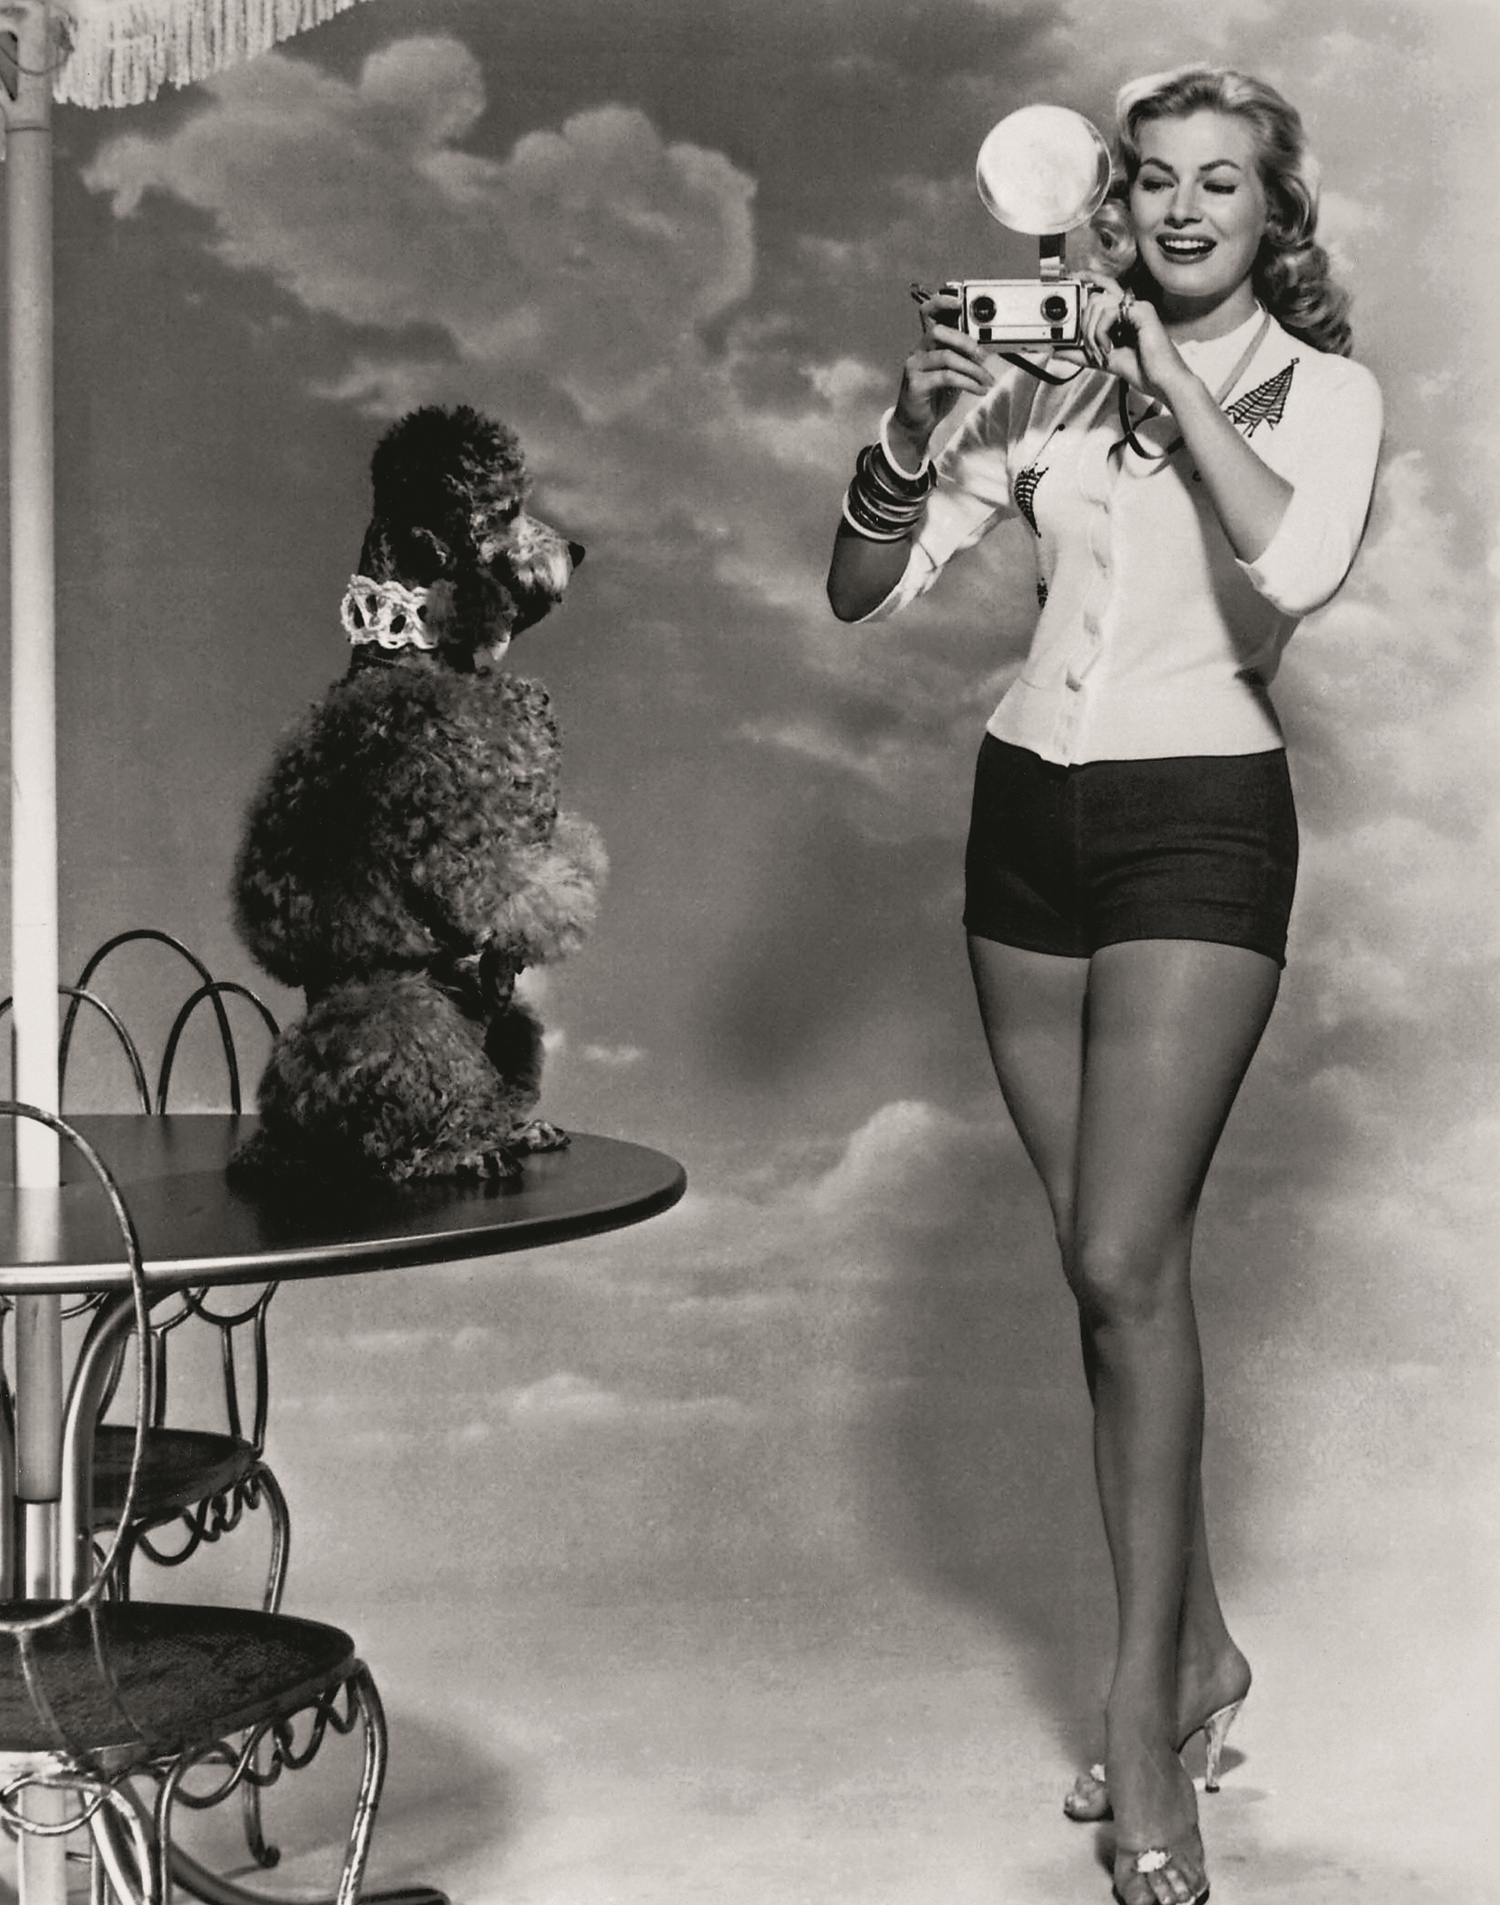 The Former Miss Sweden (1950), Anita Ekberg, is seen here in a typical 'cheesecake' pose with a Poodle, to be used for promotional publicity shots. Her screen career was largely unremarkable until she was used by Fellini in his 1960 film  La DolceVita,  getting soaked in the Trevi Fountain in Rome.